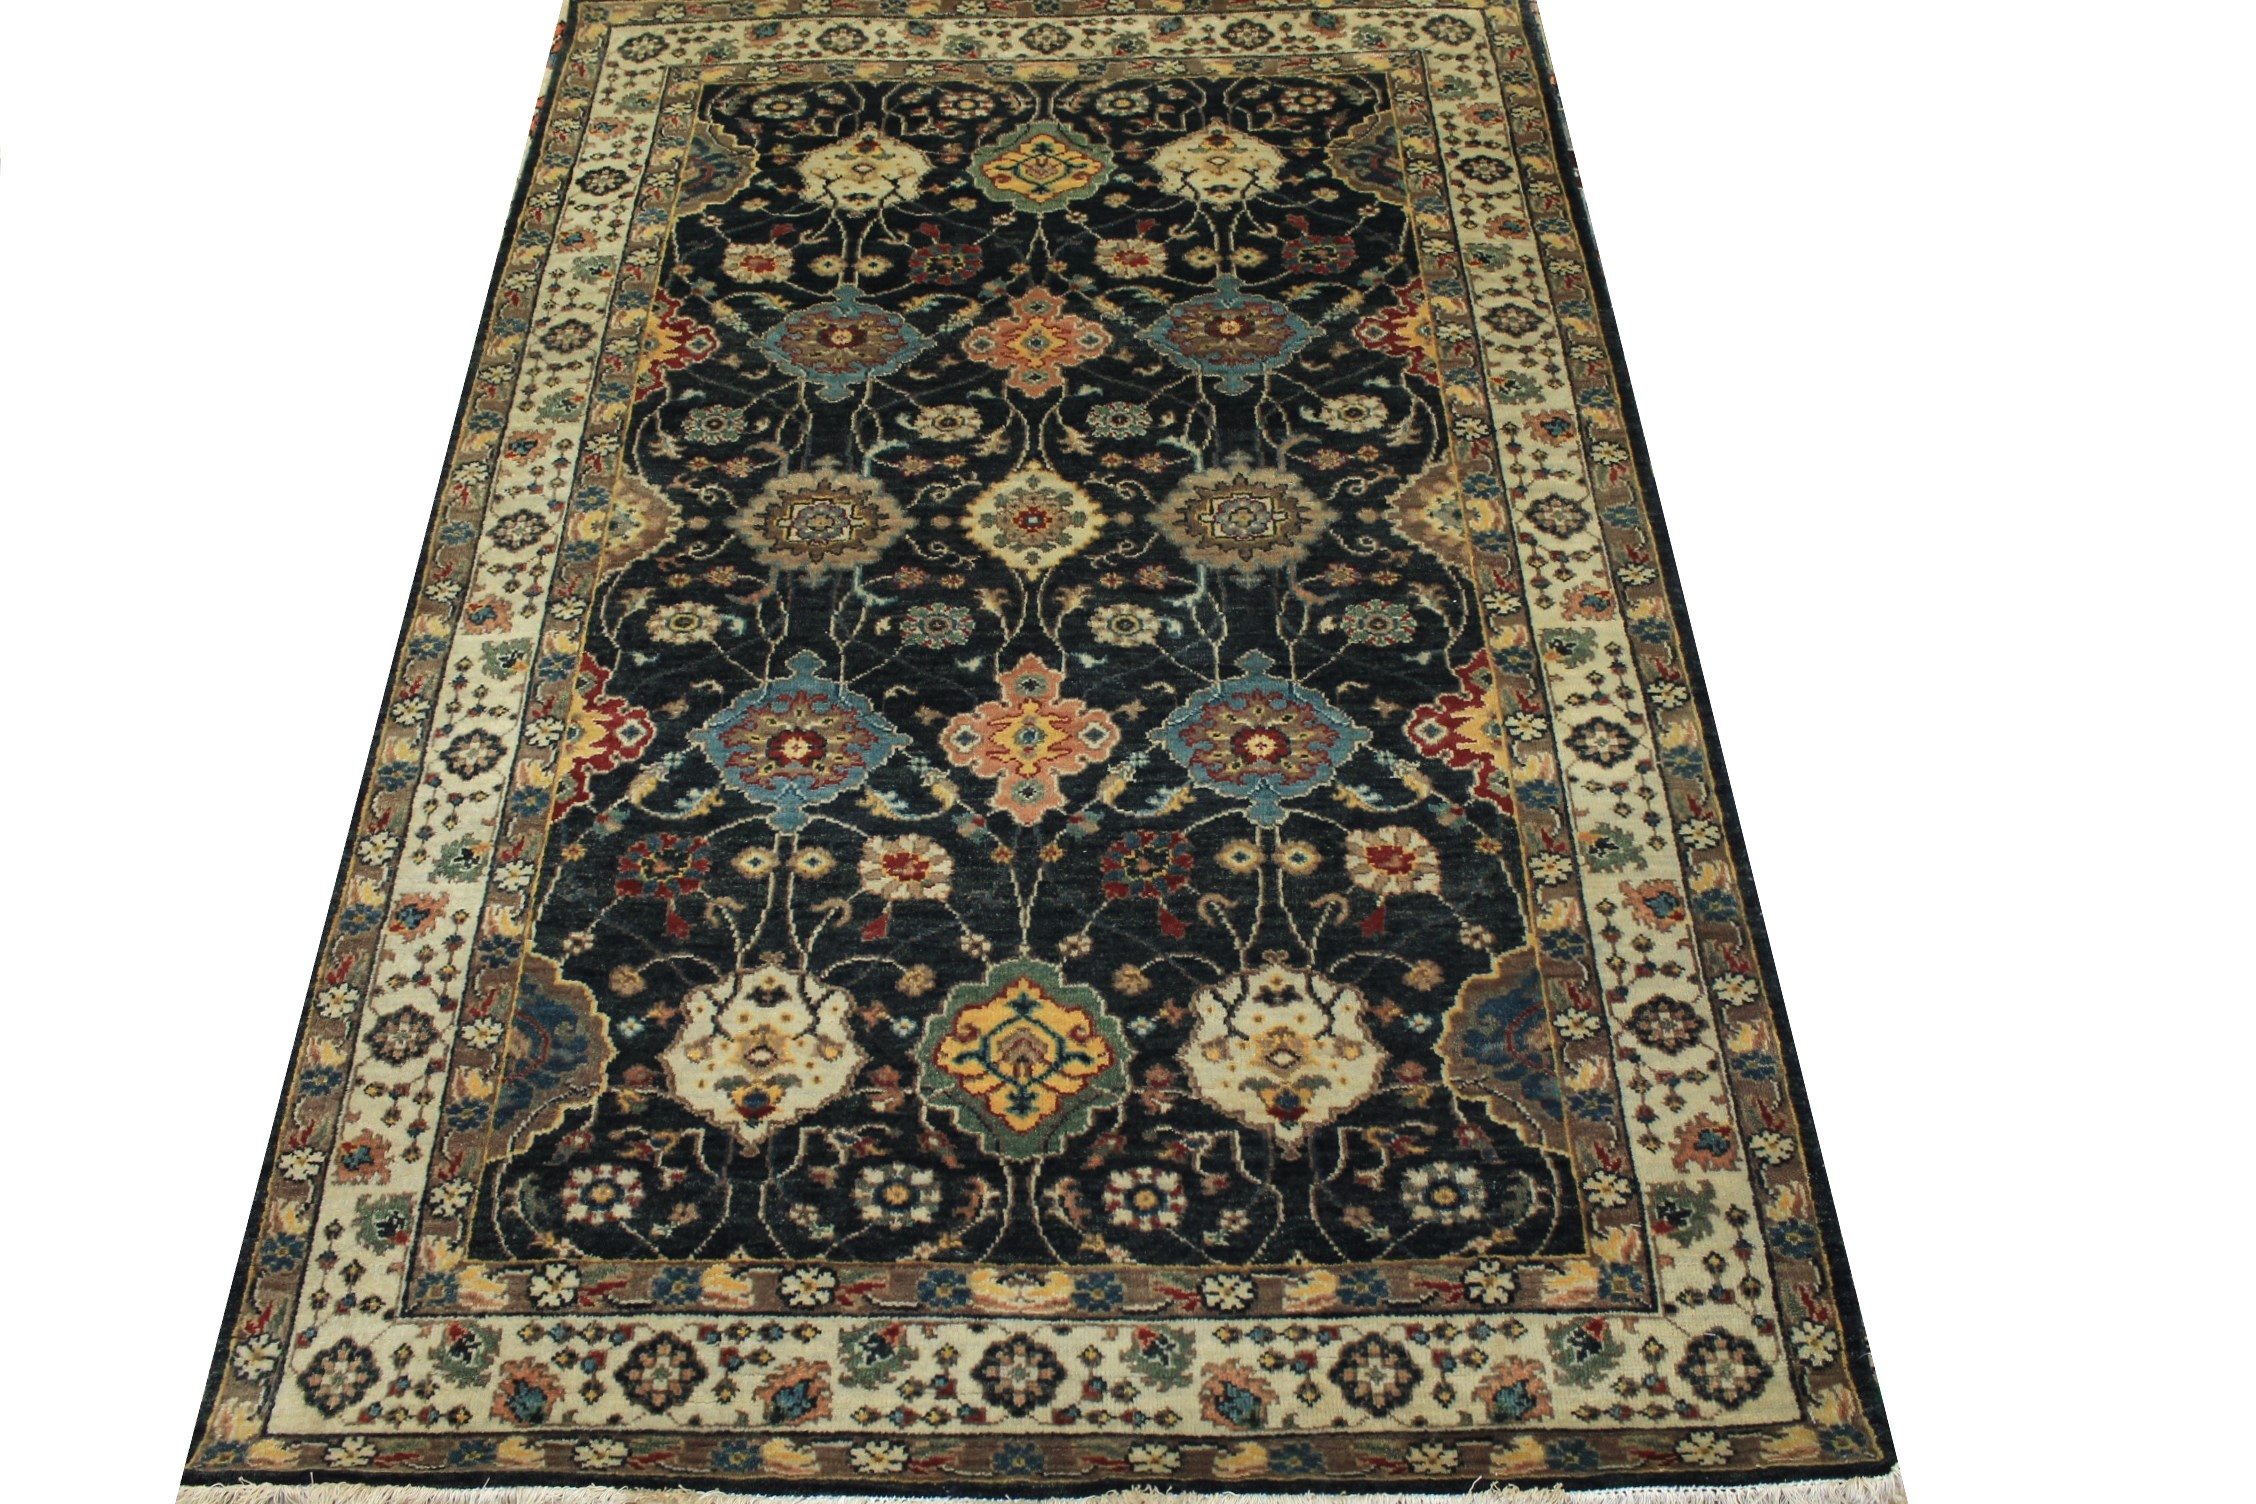 4x6 Traditional Hand Knotted Wool Area Rug - MR024975